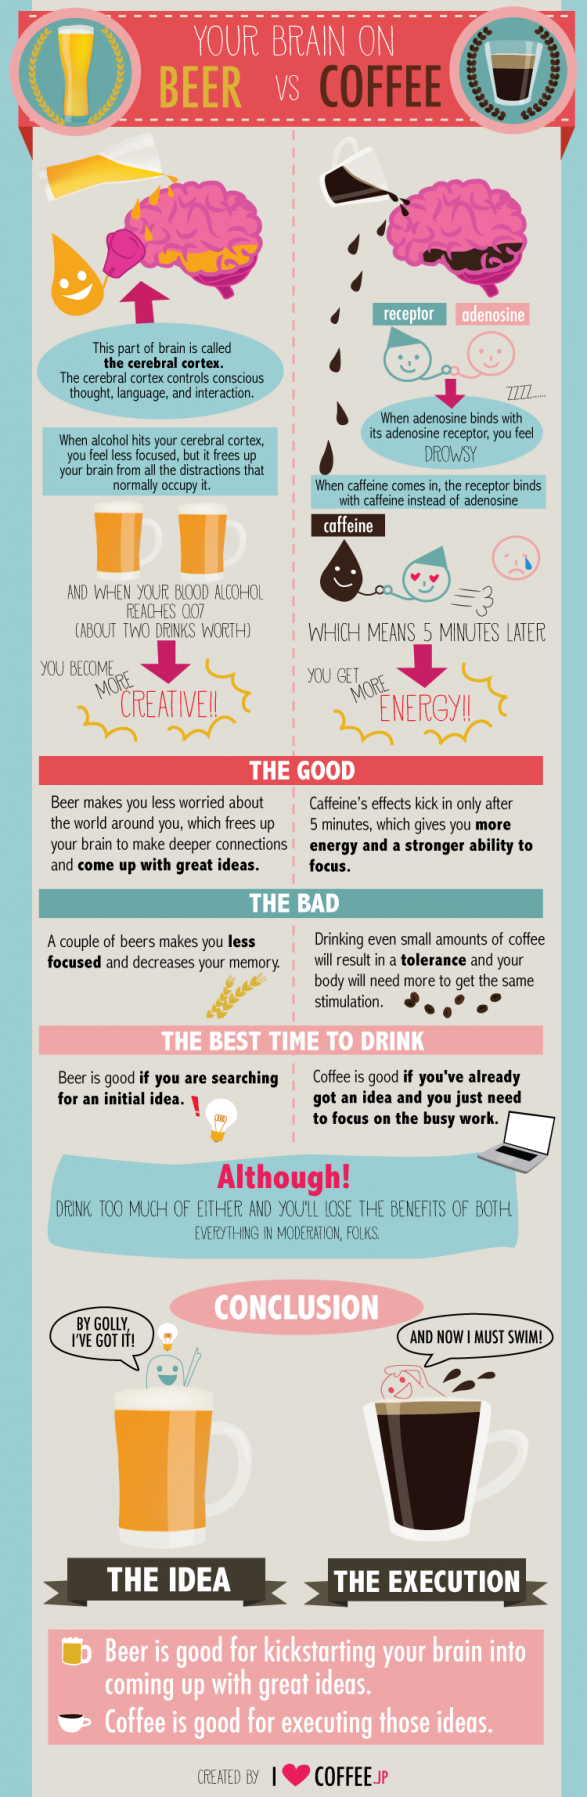 Your Brain on Beer vs. Coffee